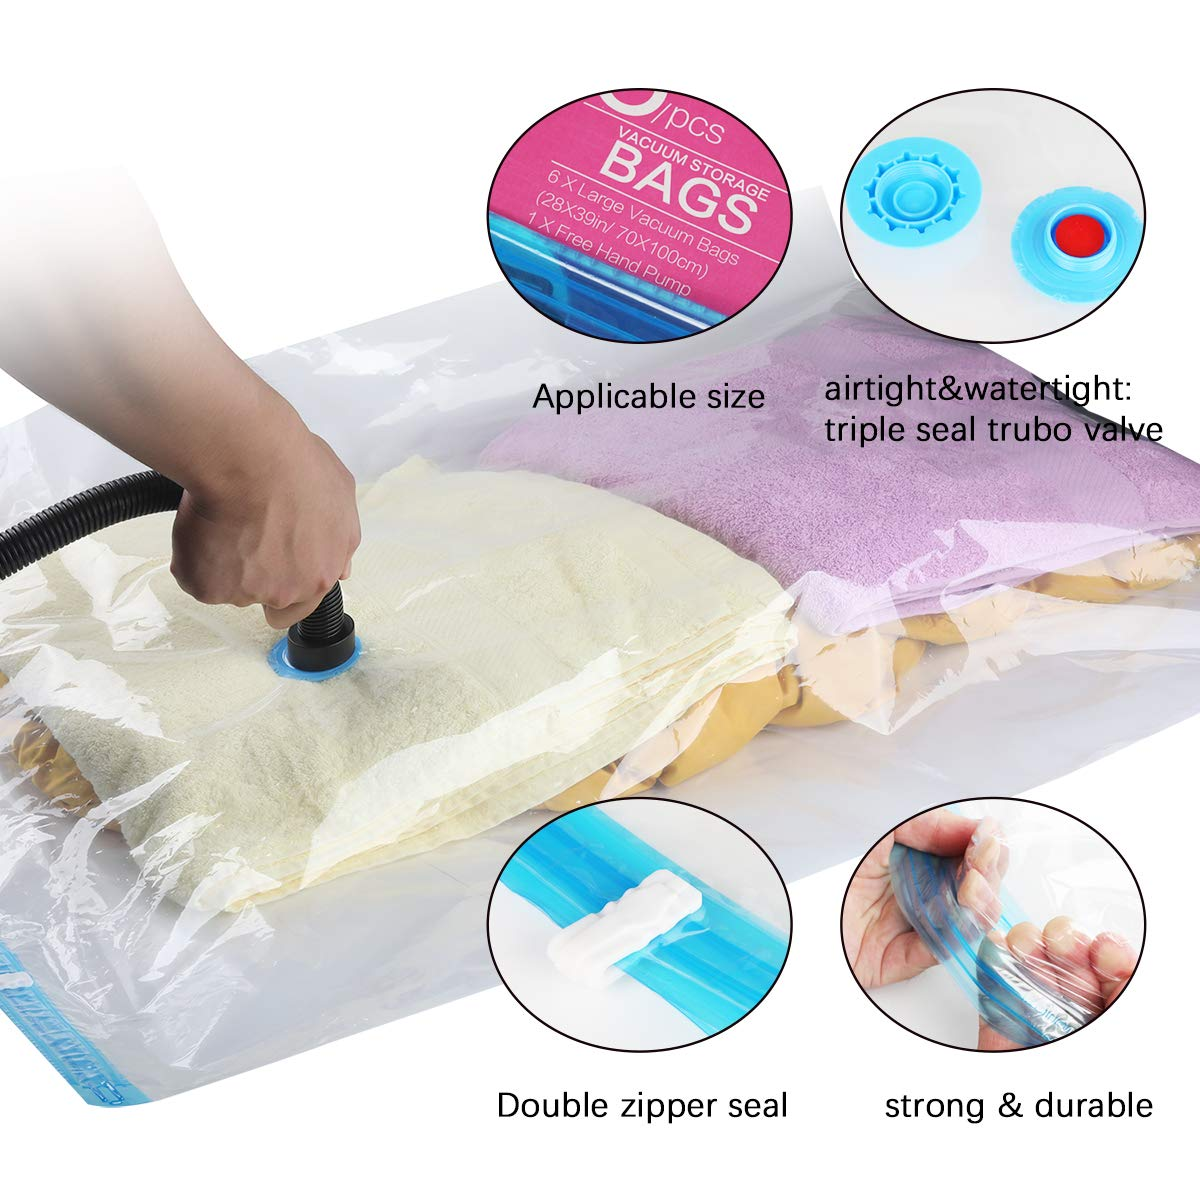 Velarnet Premium Vacuum Storage Bags 6 Pack 6 x Jumbo Space Saver Storage Bags for Travel Travel Hand Pump Included Durable and Reusable